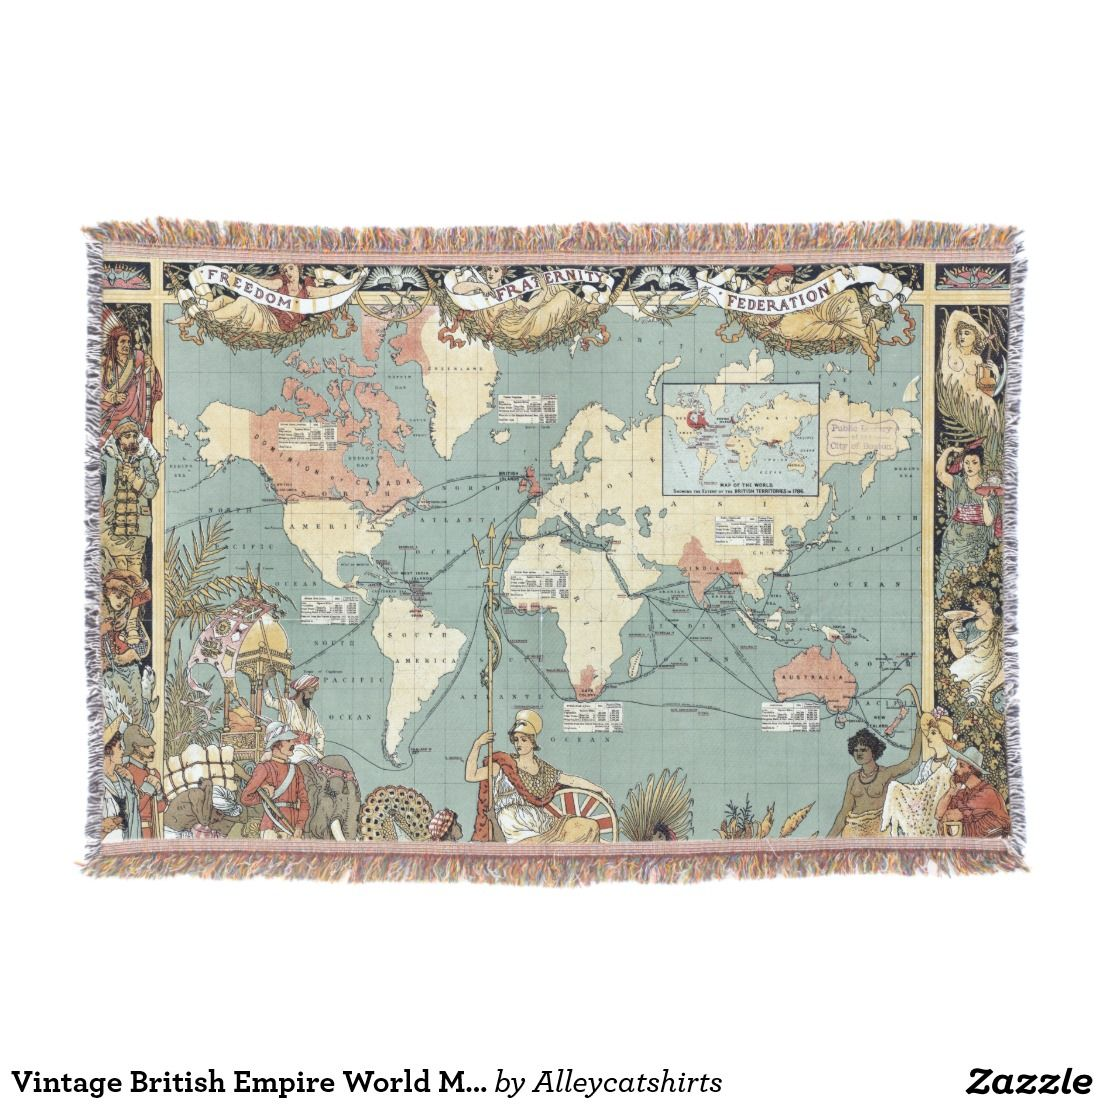 Vintage british empire world map 1886 throw blanket throw shop vintage british empire world map throw blanket created by alleycatshirts gumiabroncs Choice Image